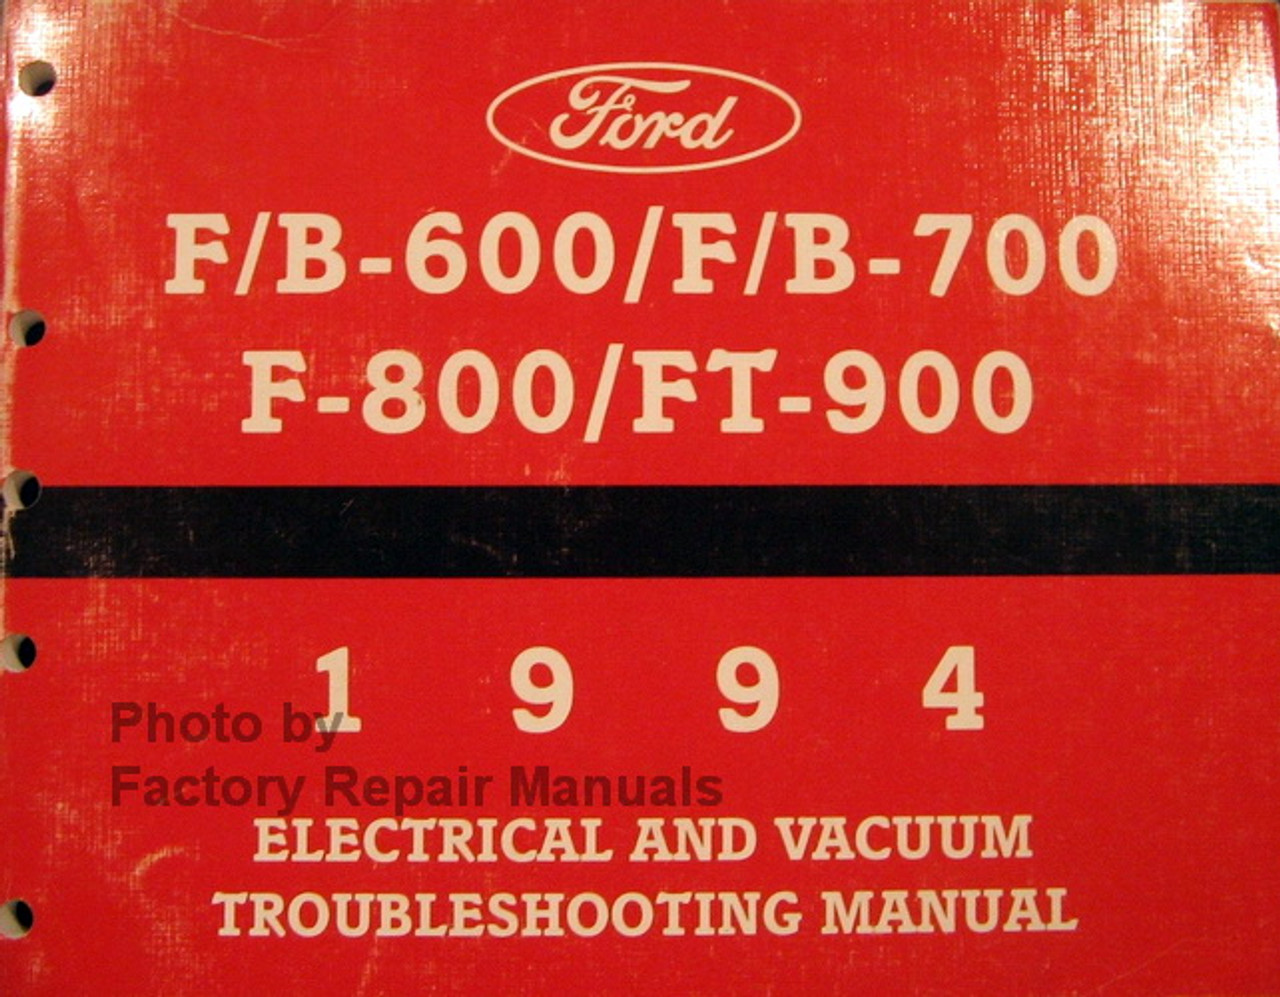 1995 Ford Aspire Electrical & Vacuum Troubleshooting Wiring ...